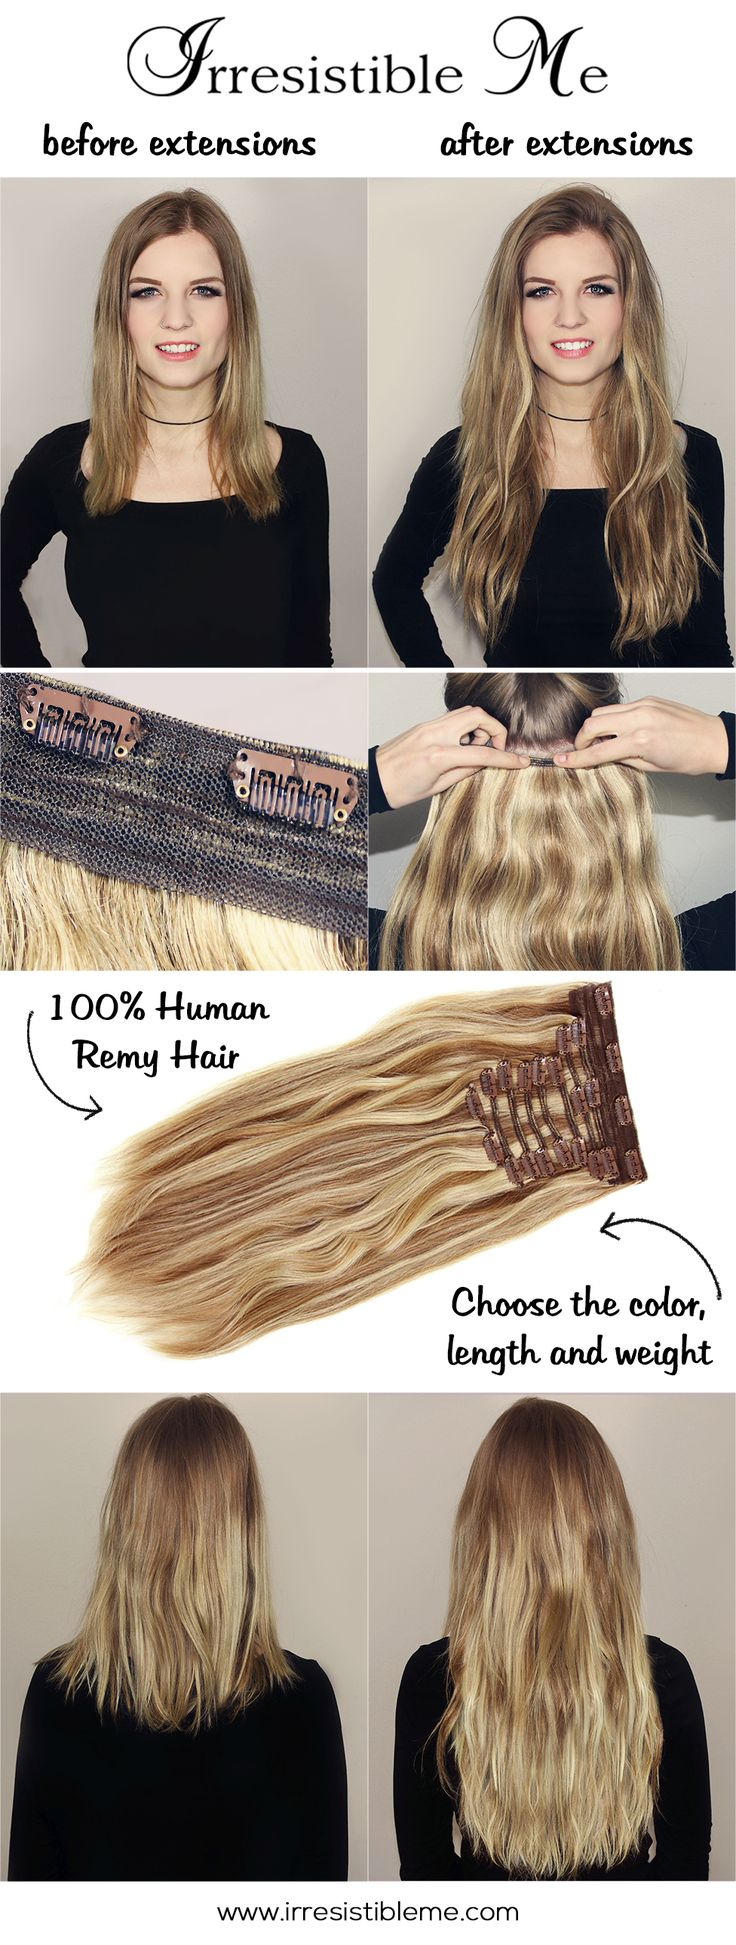 25 trending hair extensions before and after ideas on pinterest feel beautiful at an affordable price with irresistible me 100 human remy clip in pmusecretfo Image collections